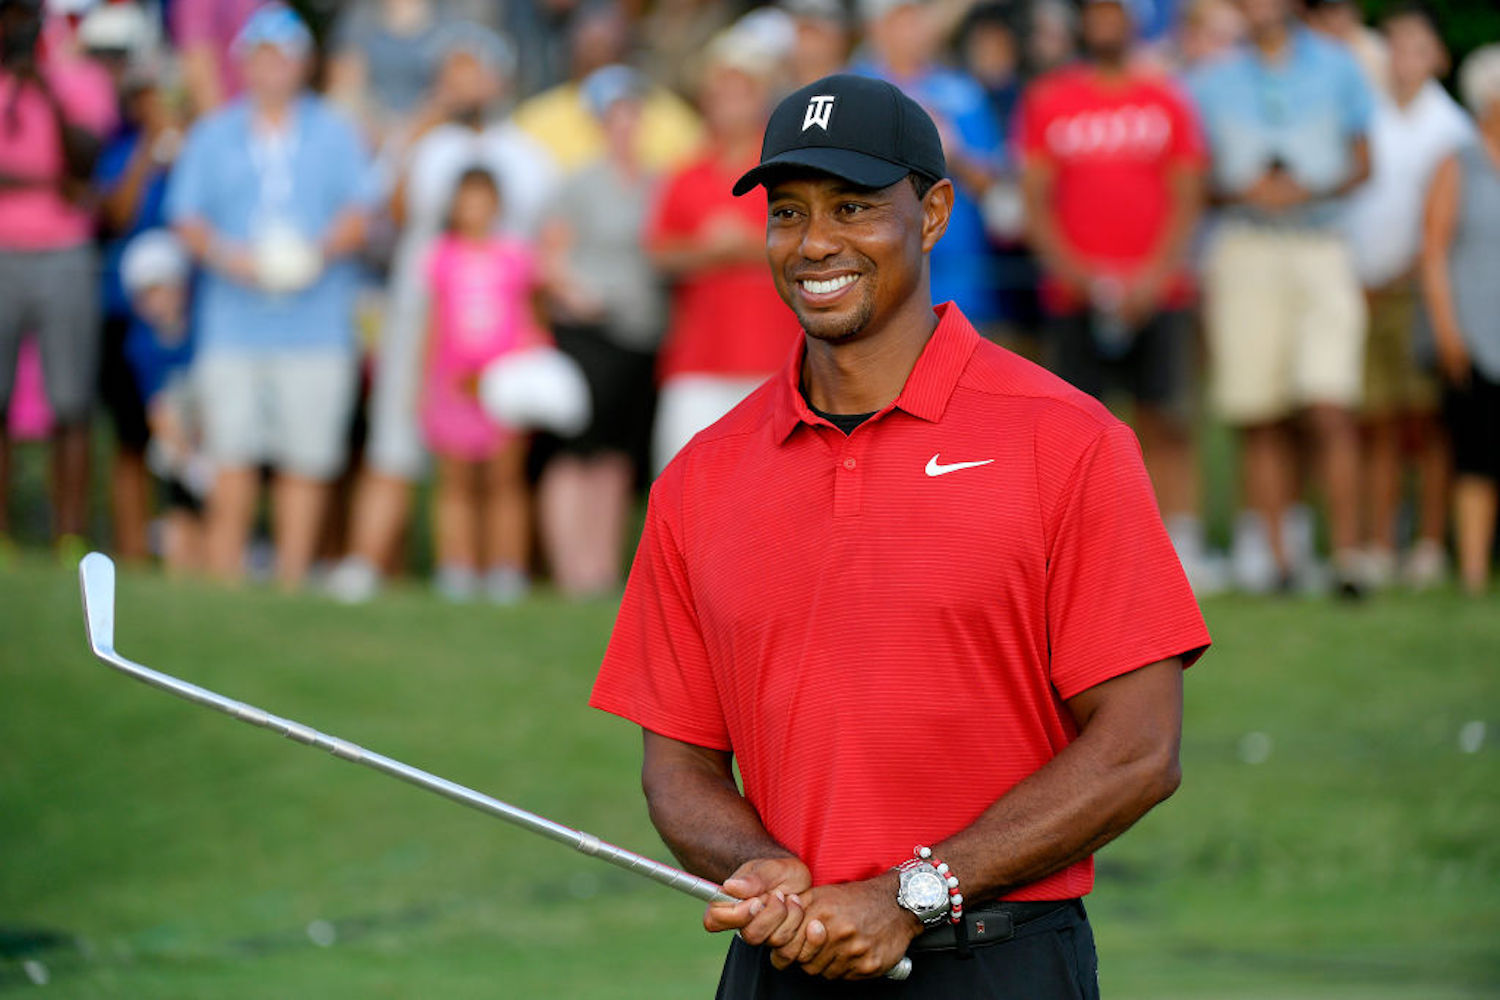 Tiger Woods is the most recognizable golfer in the world, and his iconic nickname is a big reason why. But what is Tiger's real first name?